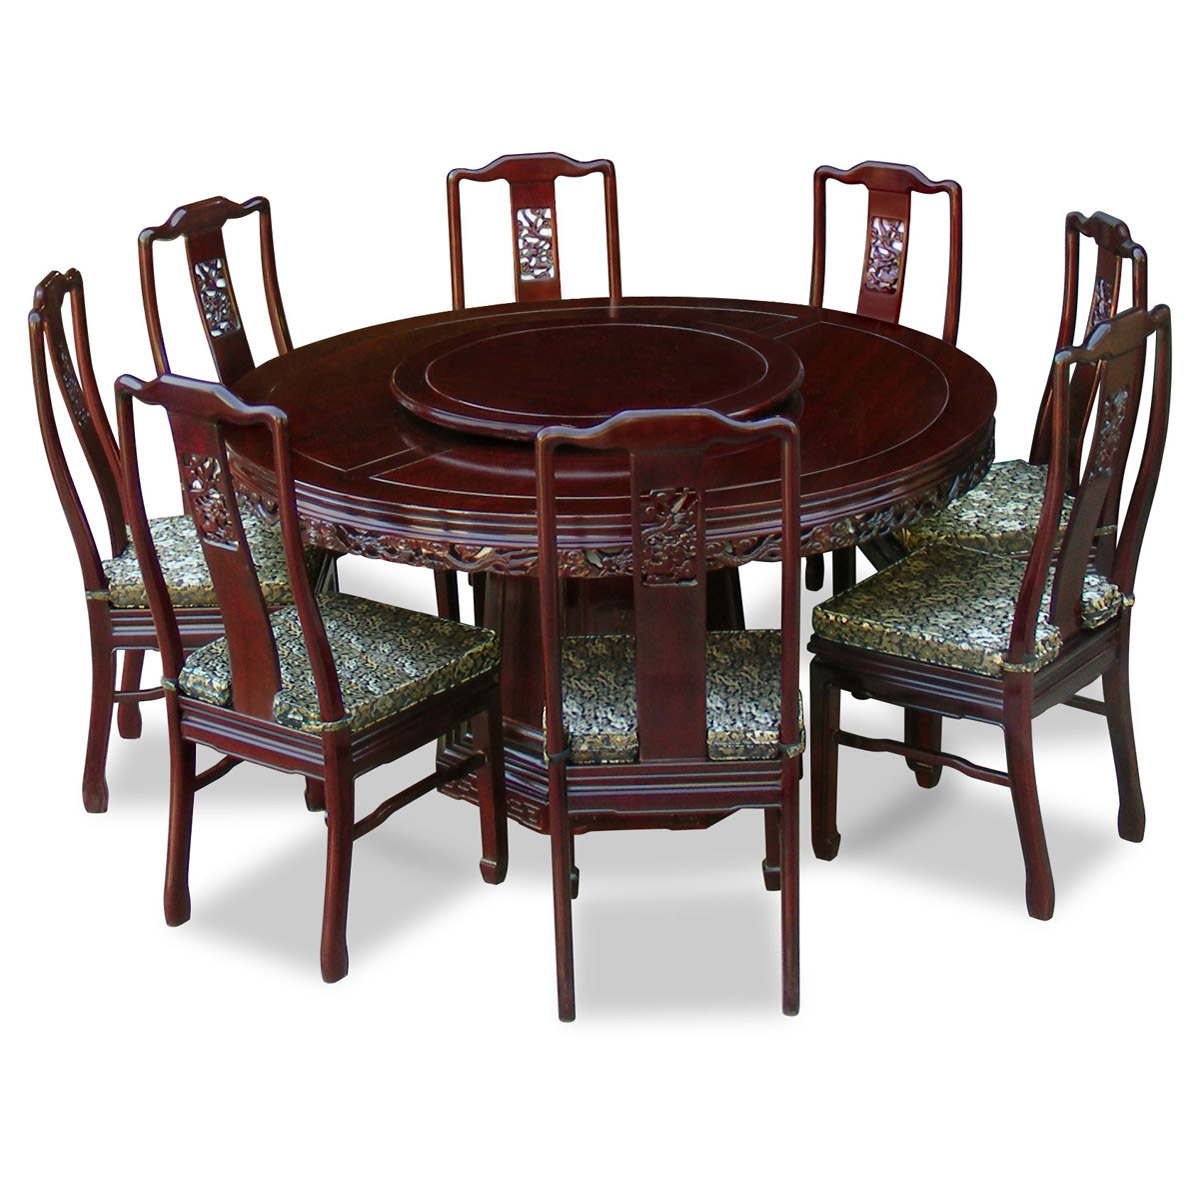 8 Seater Round Dining Table: Perfect 8 Person Round Dining Table